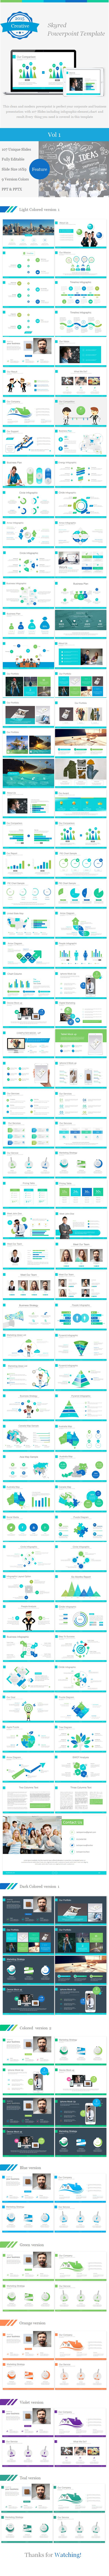 Skyred Powerpoint Template (PowerPoint Templates)